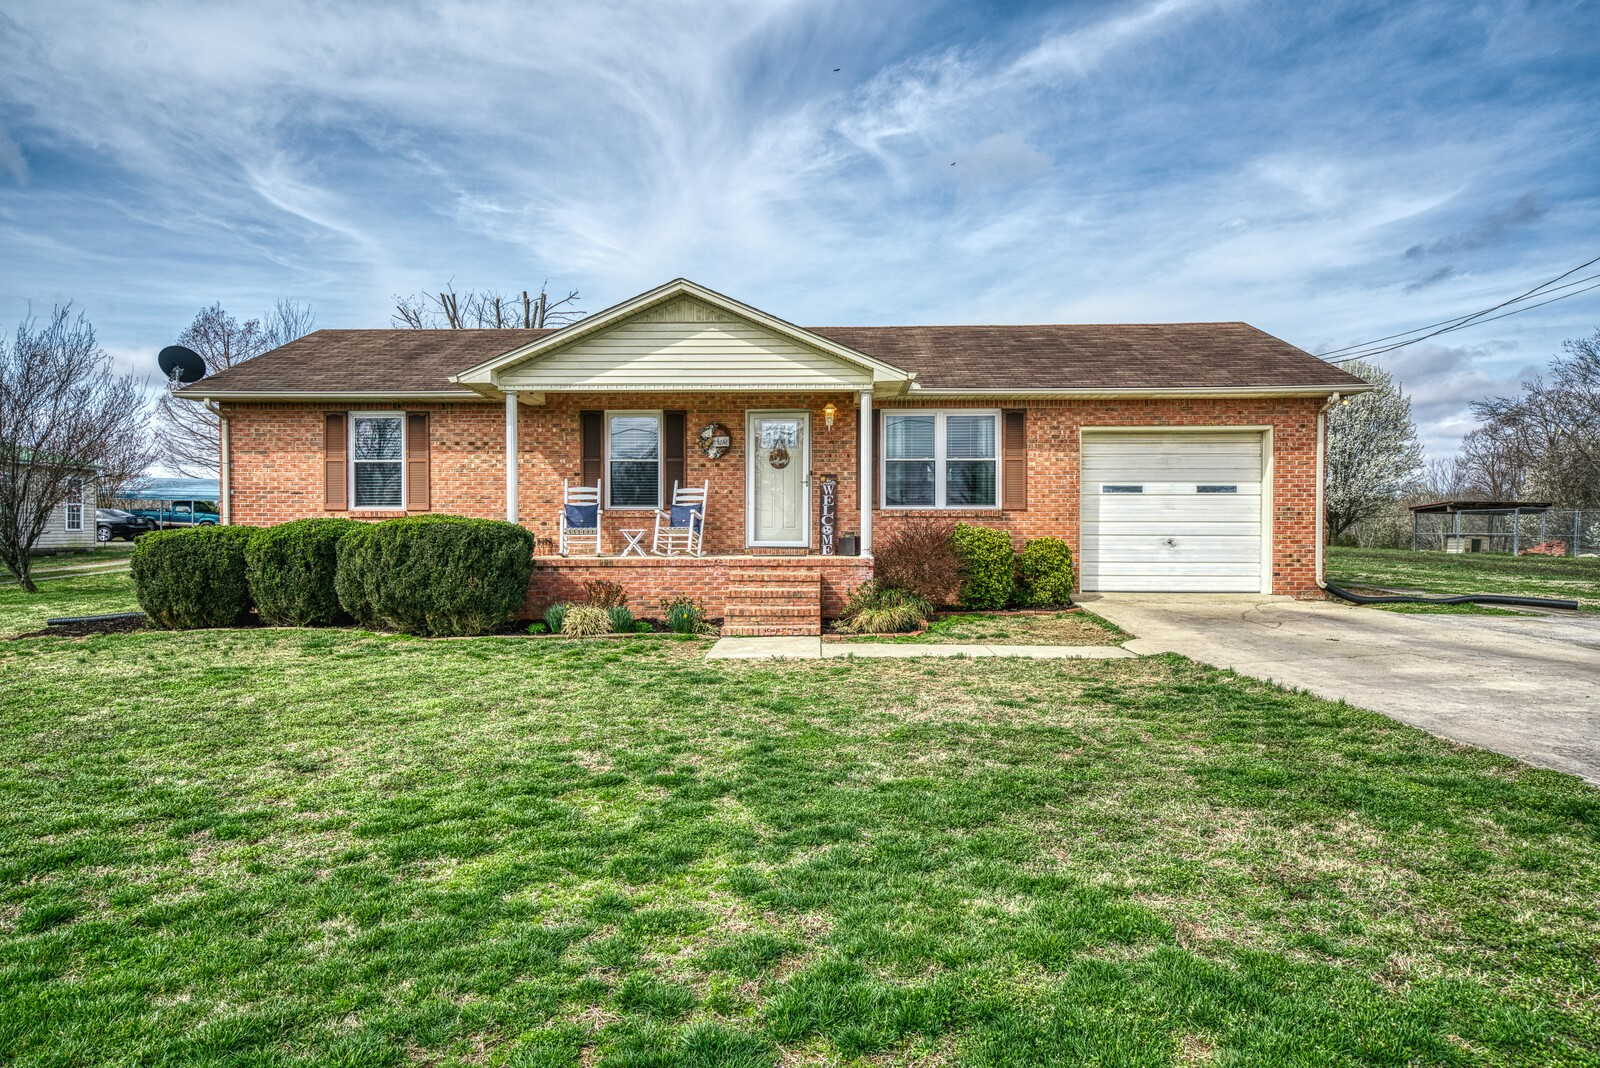 196 Kellee Dr Property Photo - Dowelltown, TN real estate listing